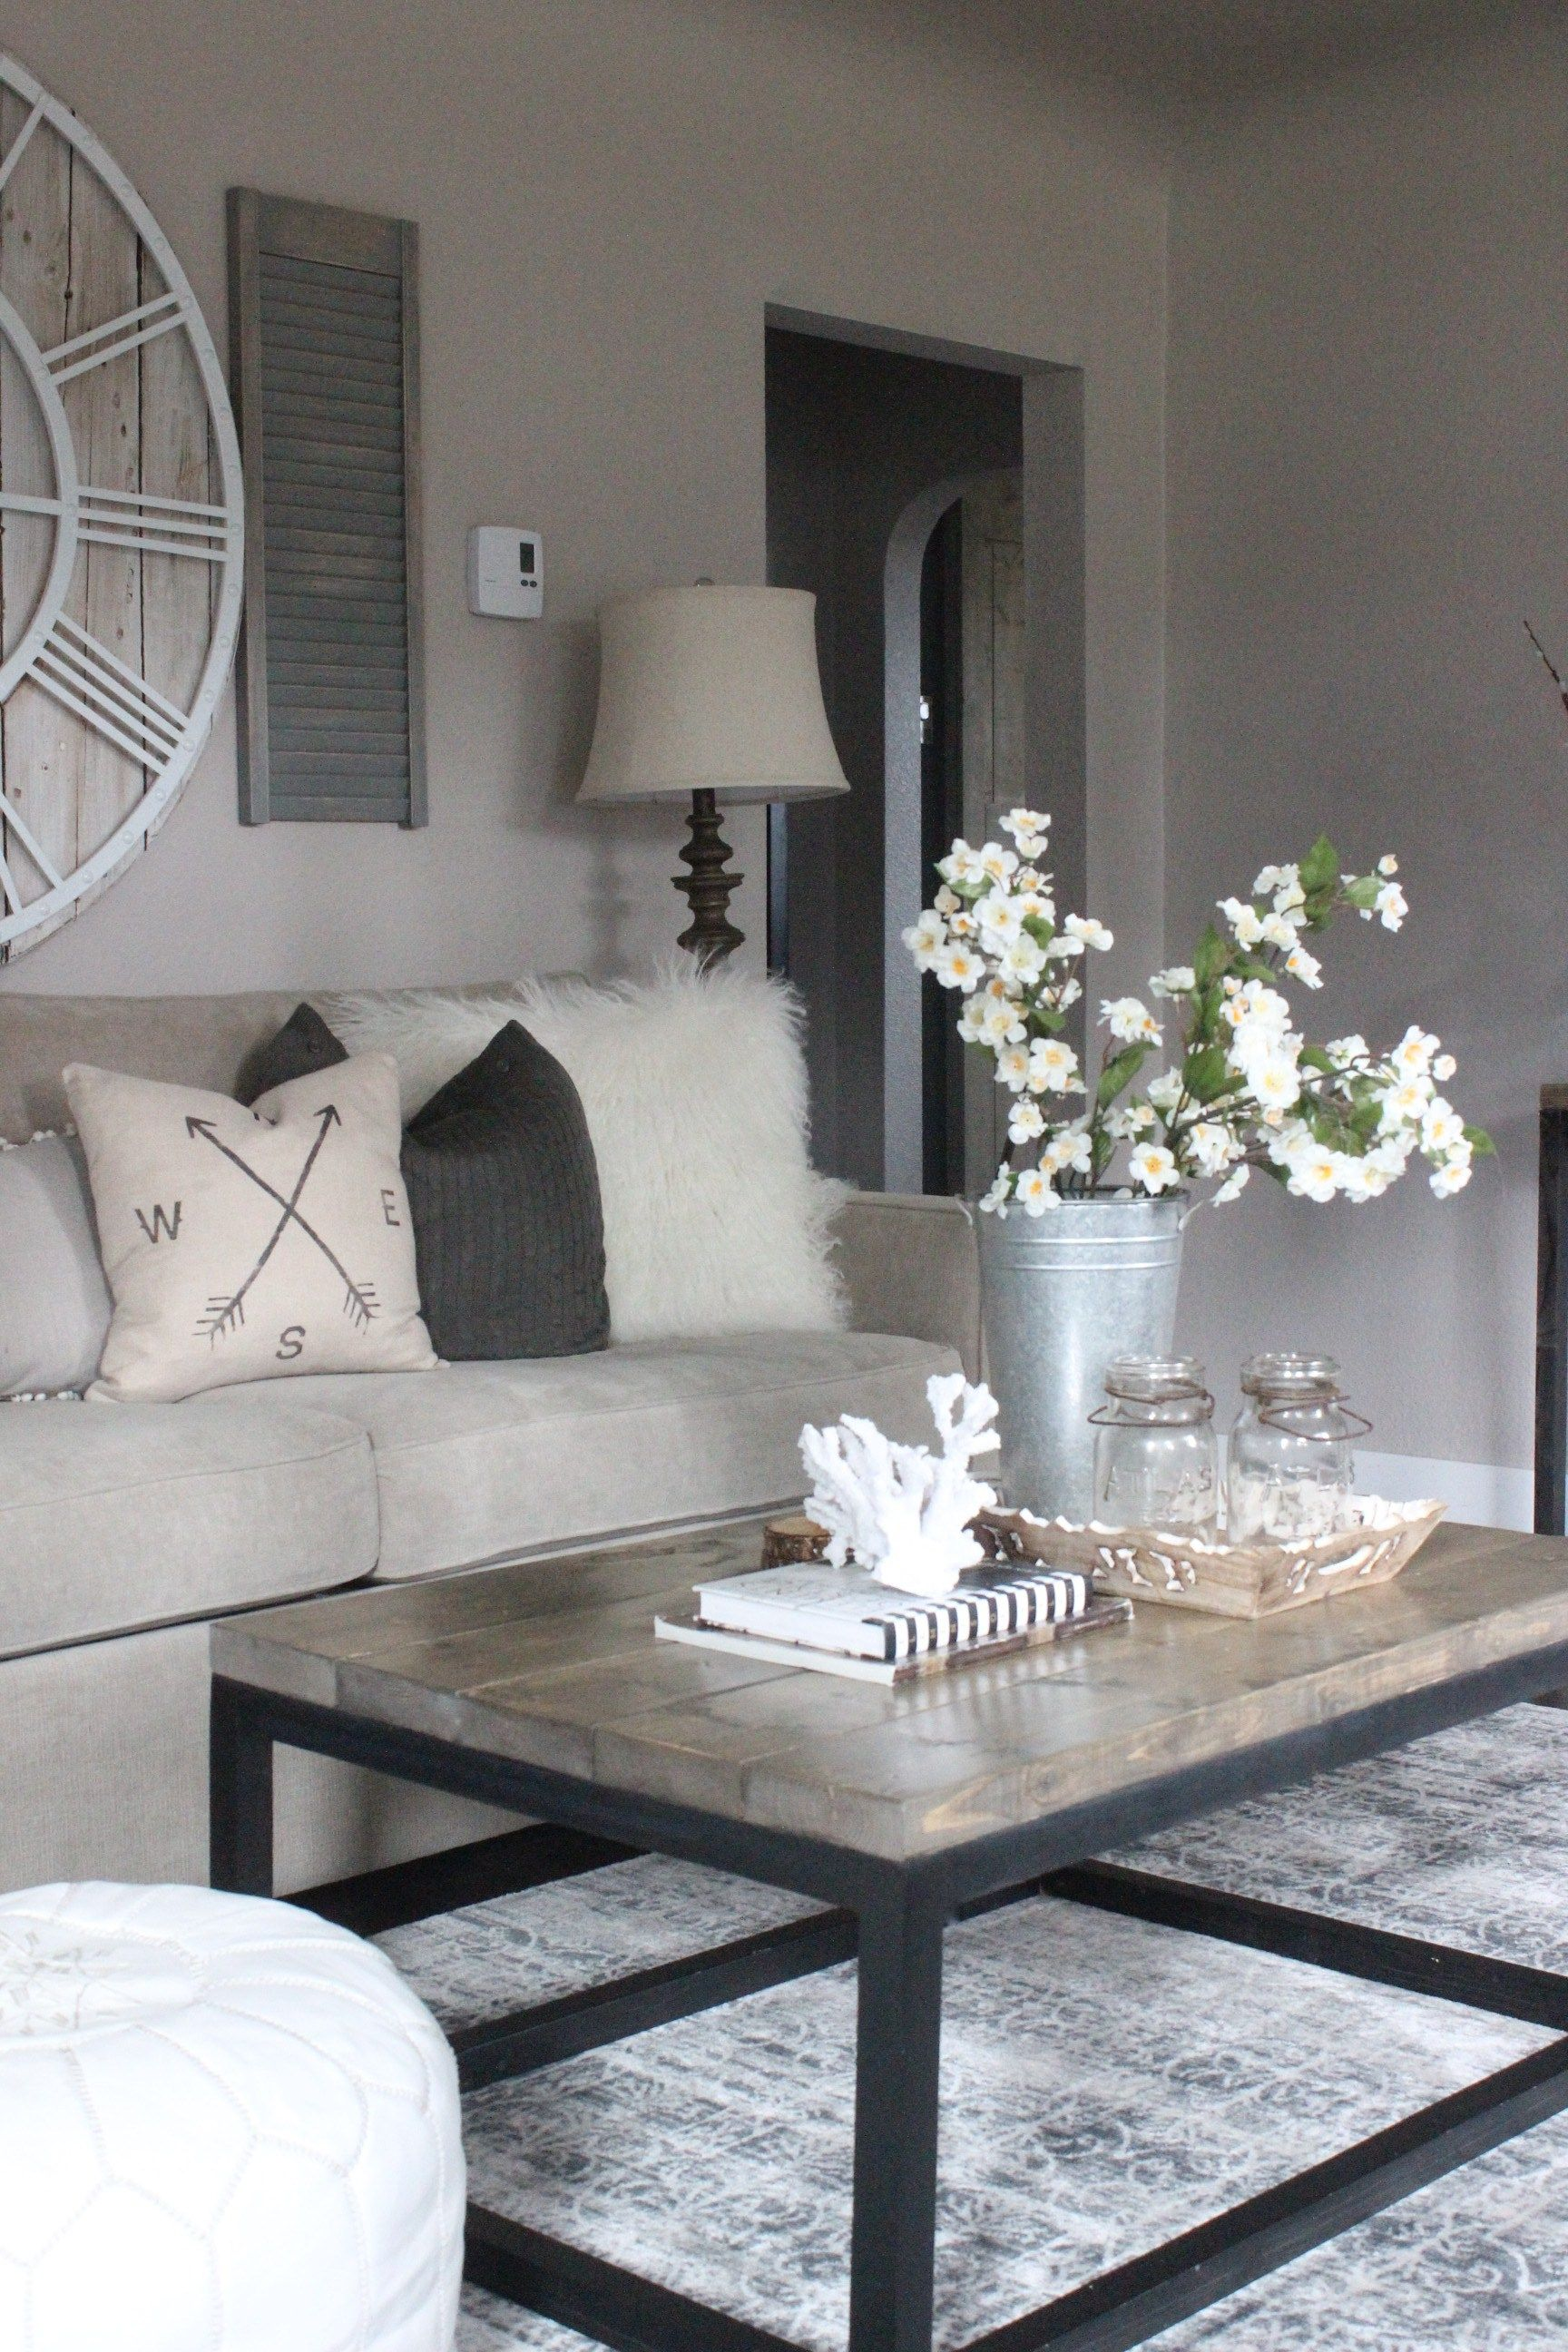 How To Make Your Own Restoration Hardware Stains Easy Modern Farmhouse Living Room Decor Farmhouse Decor Living Room Farm House Living Room [ 2592 x 1728 Pixel ]